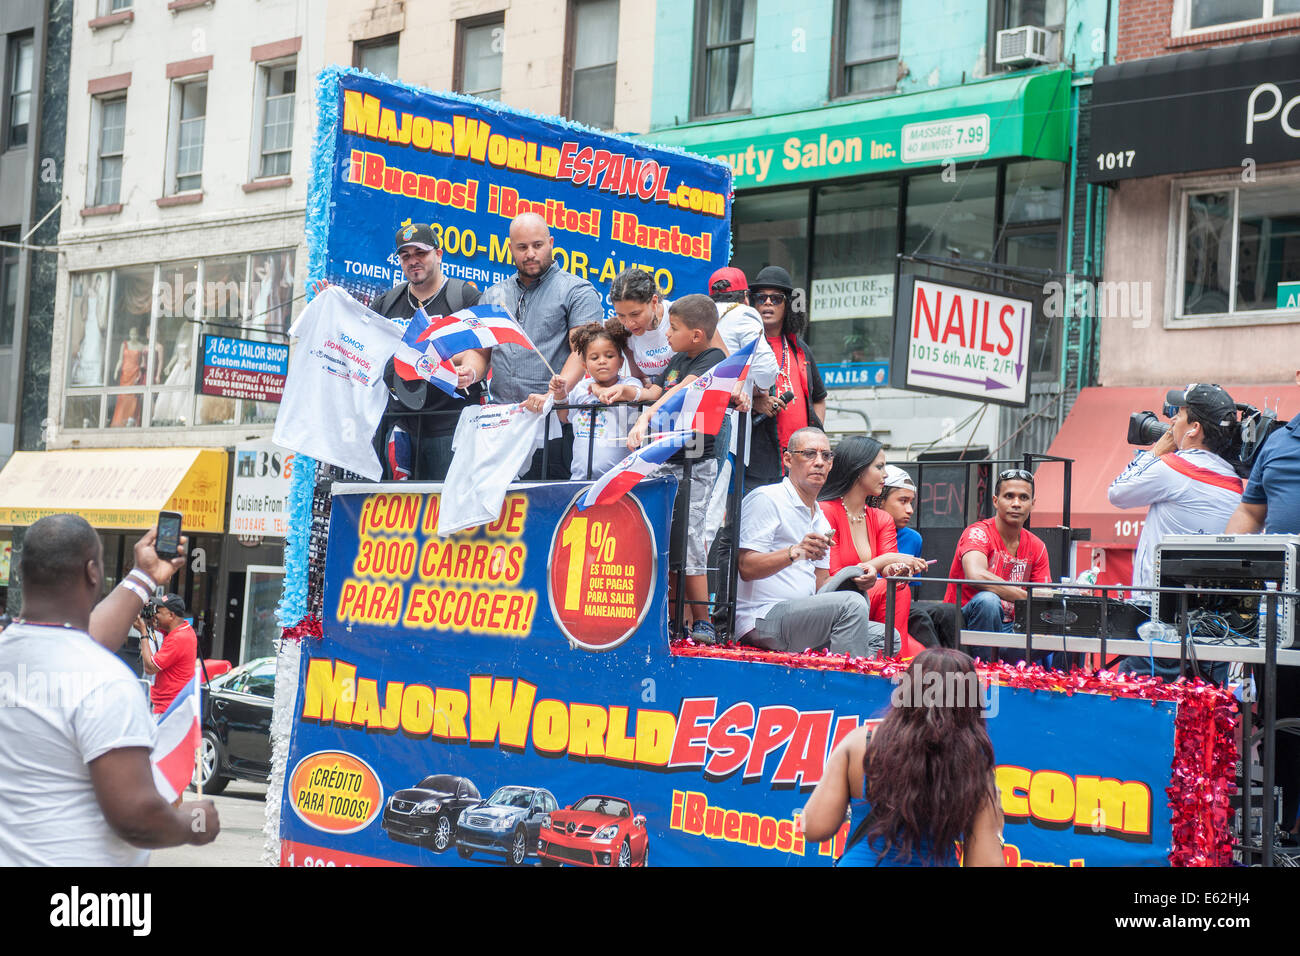 Major World New York >> Auto Dealer Major World Sponsors A Float To Engage The